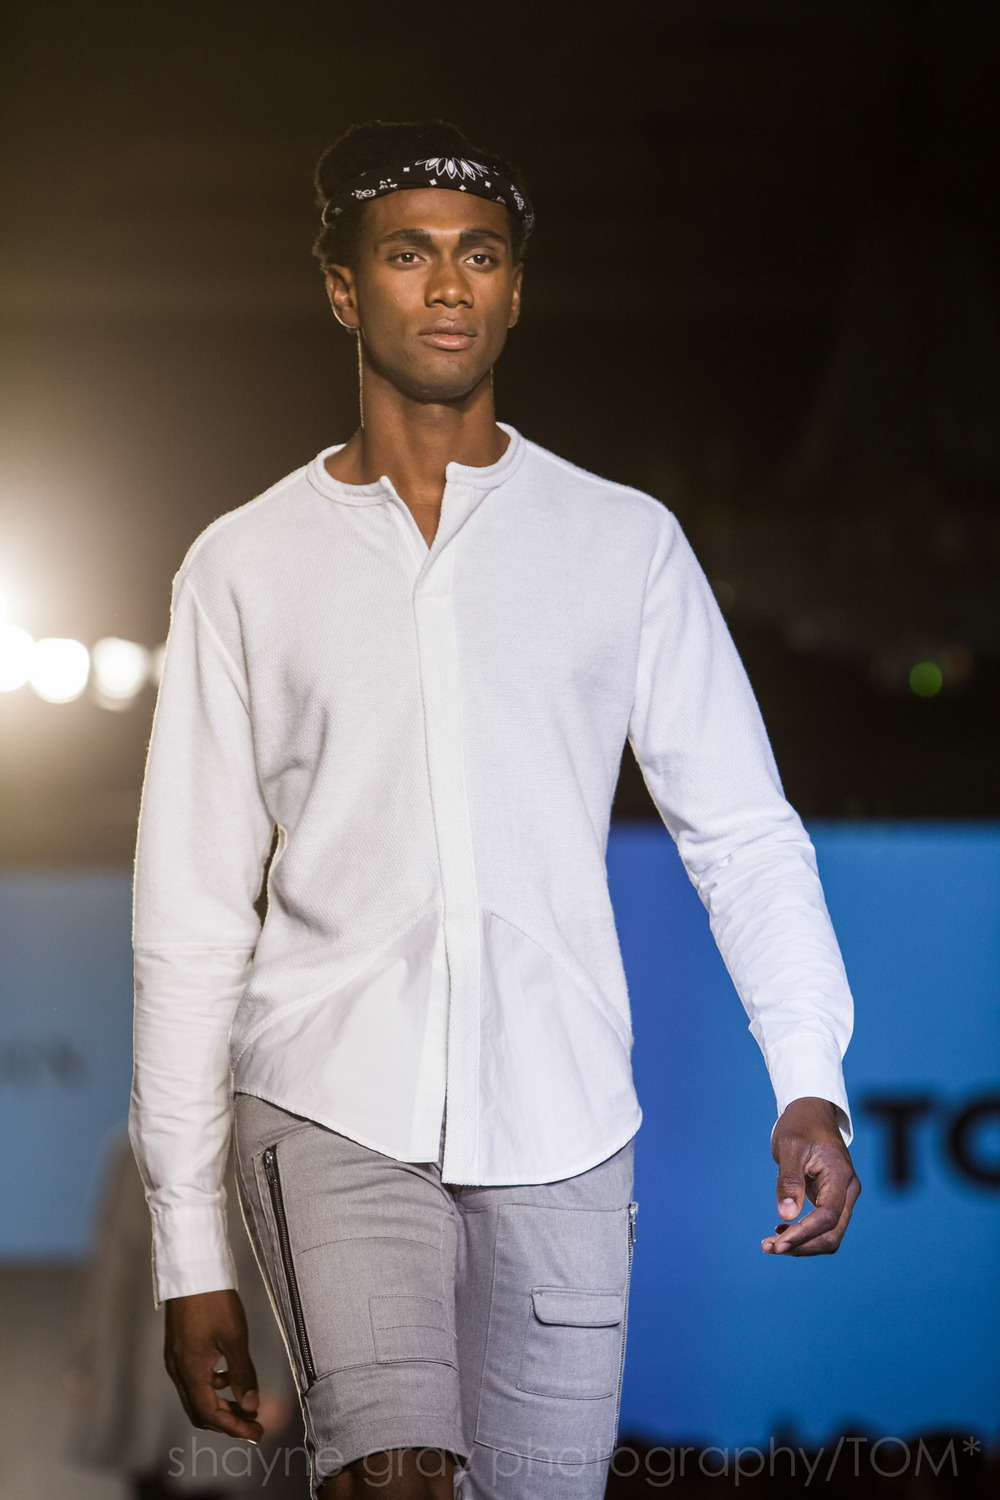 Shayne-Gray-Toronto-men's-fashion_week-TOM-sons-of-odin-8549.jpg